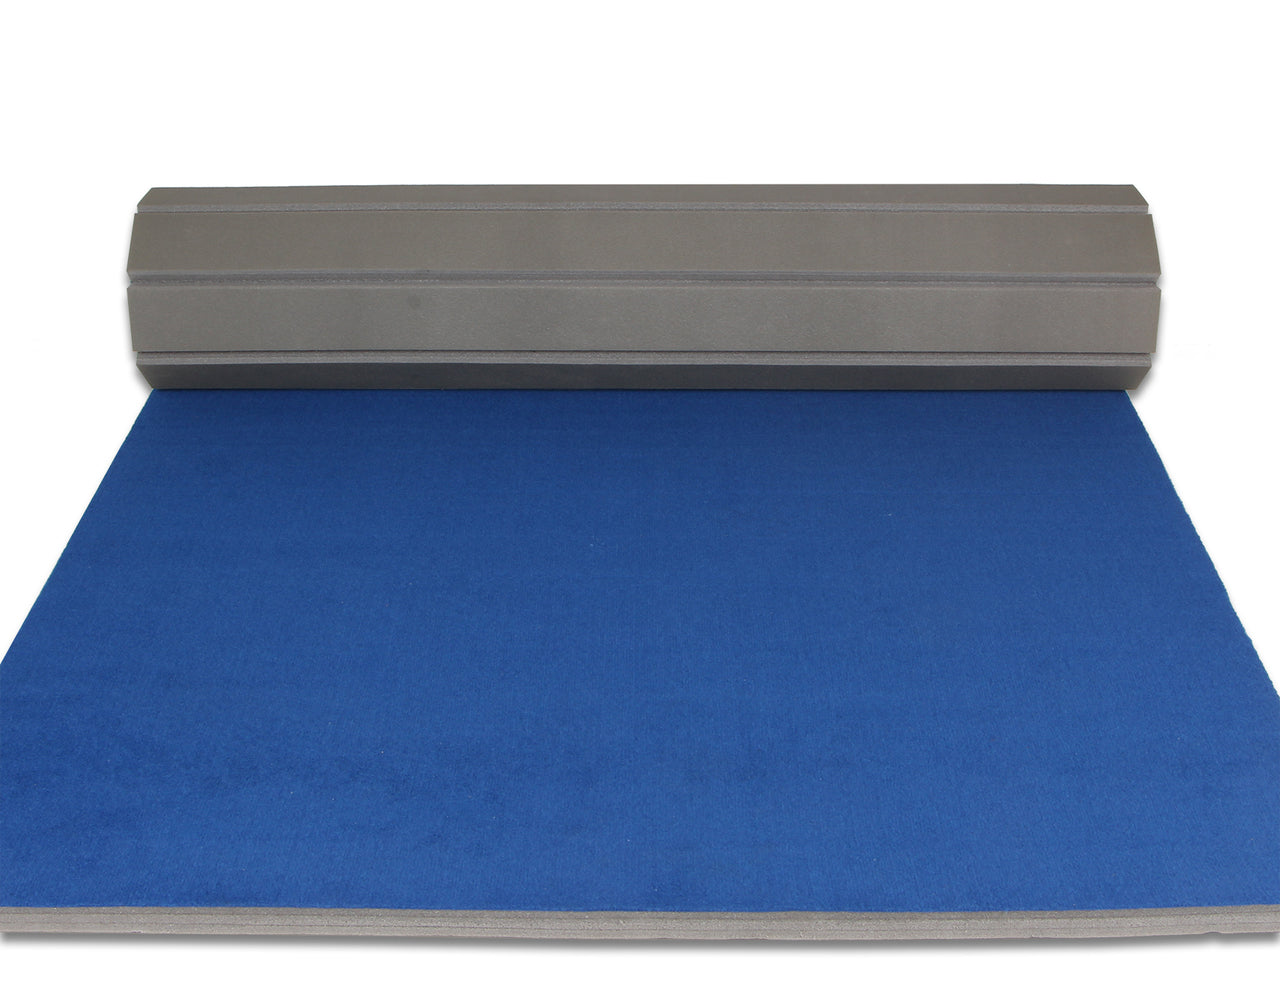 "Flexi Roll Carpet 3cm x 1.83m x 12.8m (1.2""x6'x42')"